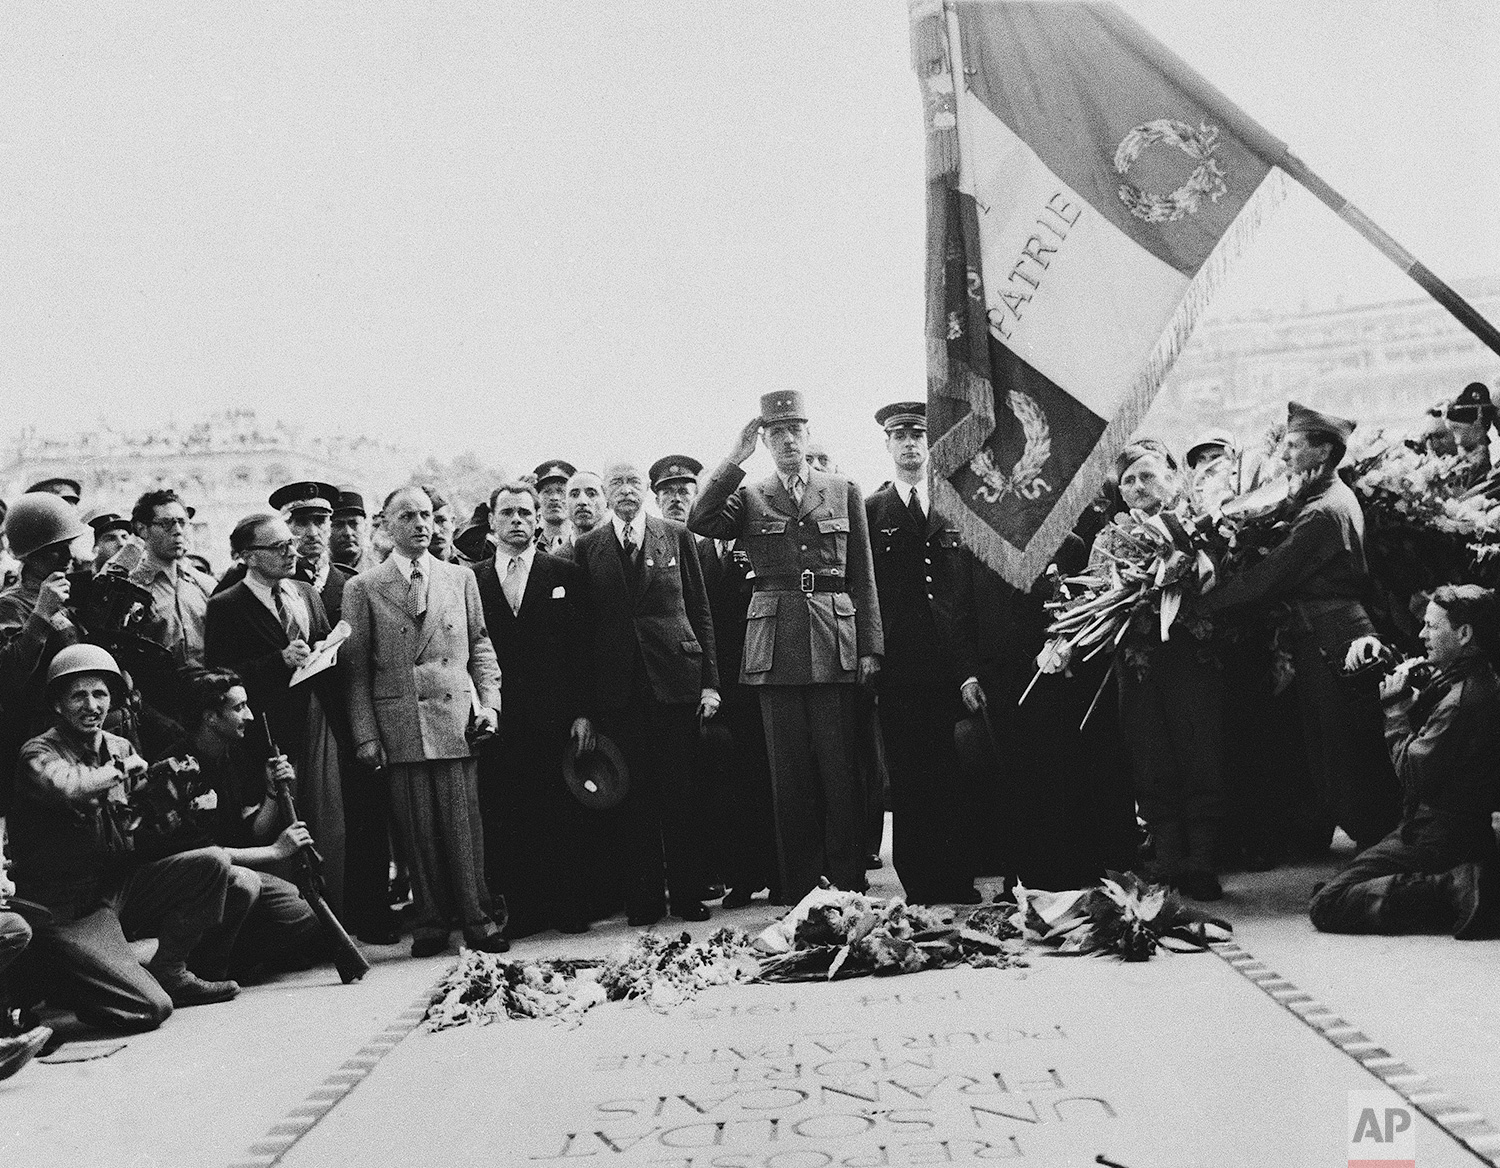 General Charles De Gaulle salutes the Tricolor after placing his wreath on the Tomb of the French Unknown Soldier of the last war, at the Arc de Triomphe in the French capital in Paris on August 28, 1944. (AP Photo/Andrew Lopez)